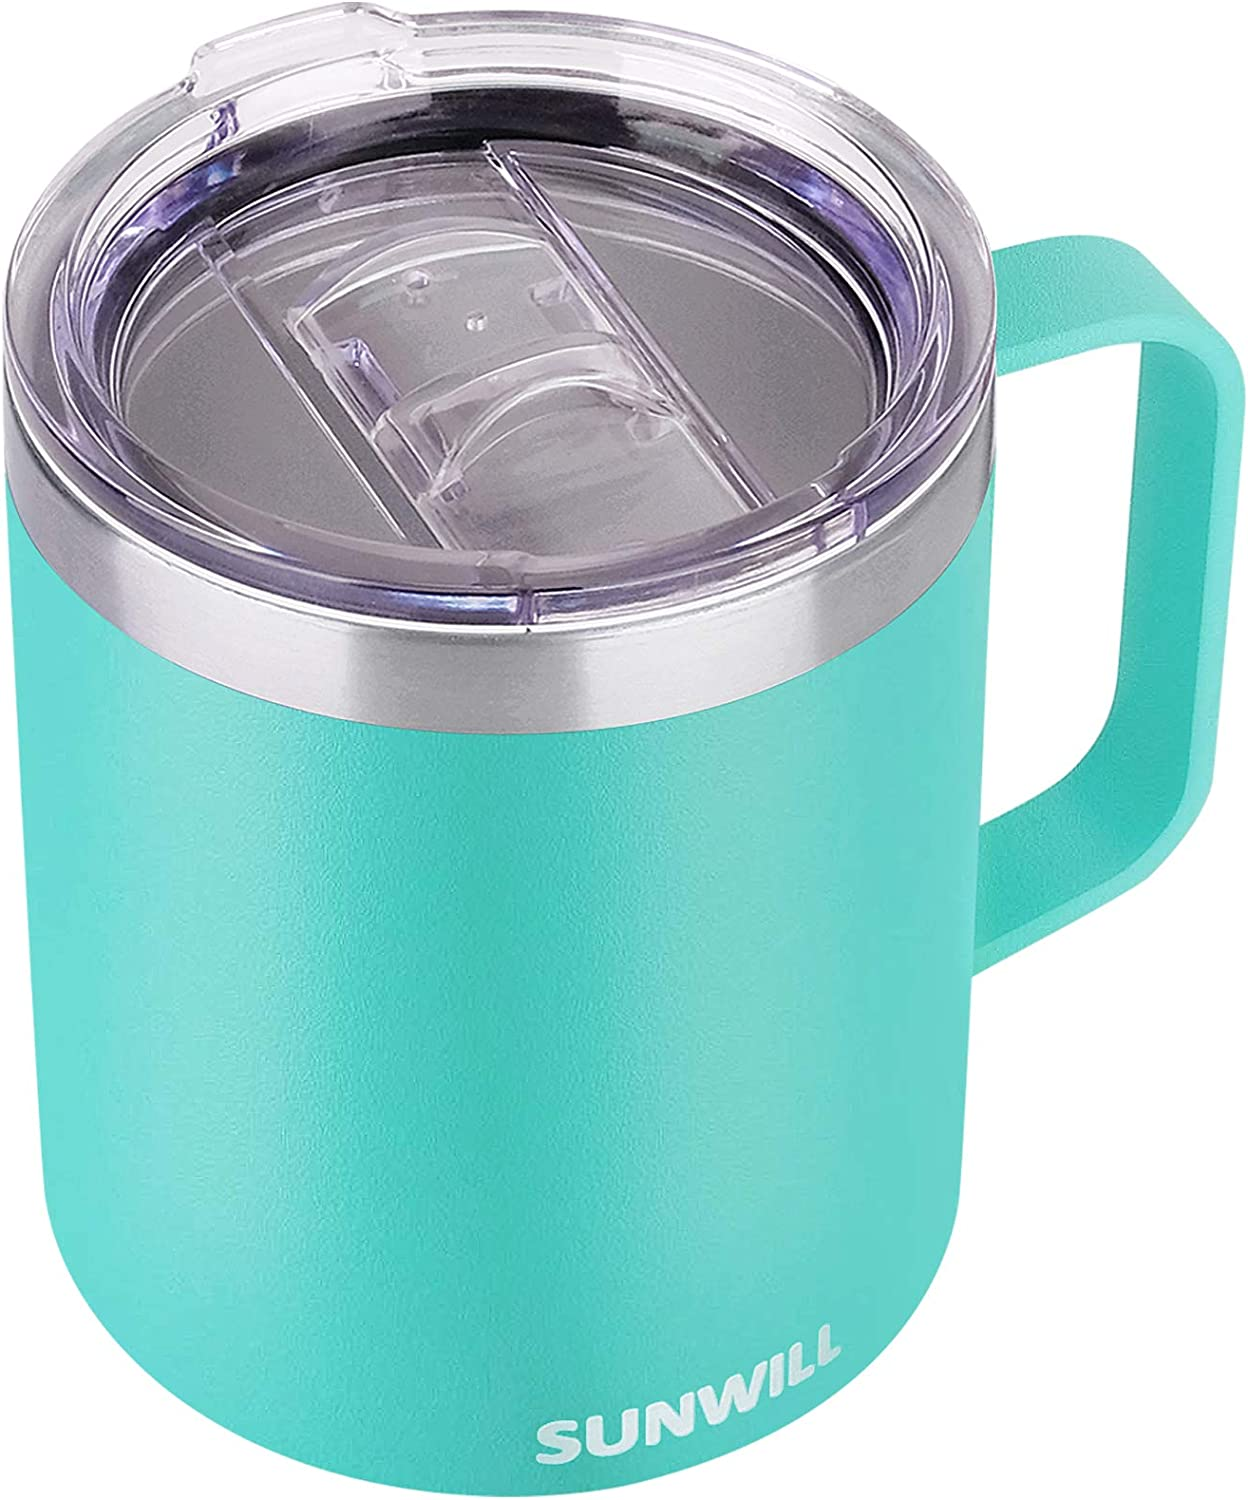 SUNWILL 14 oz Coffee Mug, Vacuum Insulated Camping Mug with Lid, Double Wall Stainless Steel Travel Tumbler Cup, Coffee Thermos Outdoor, Powder Coated Teal